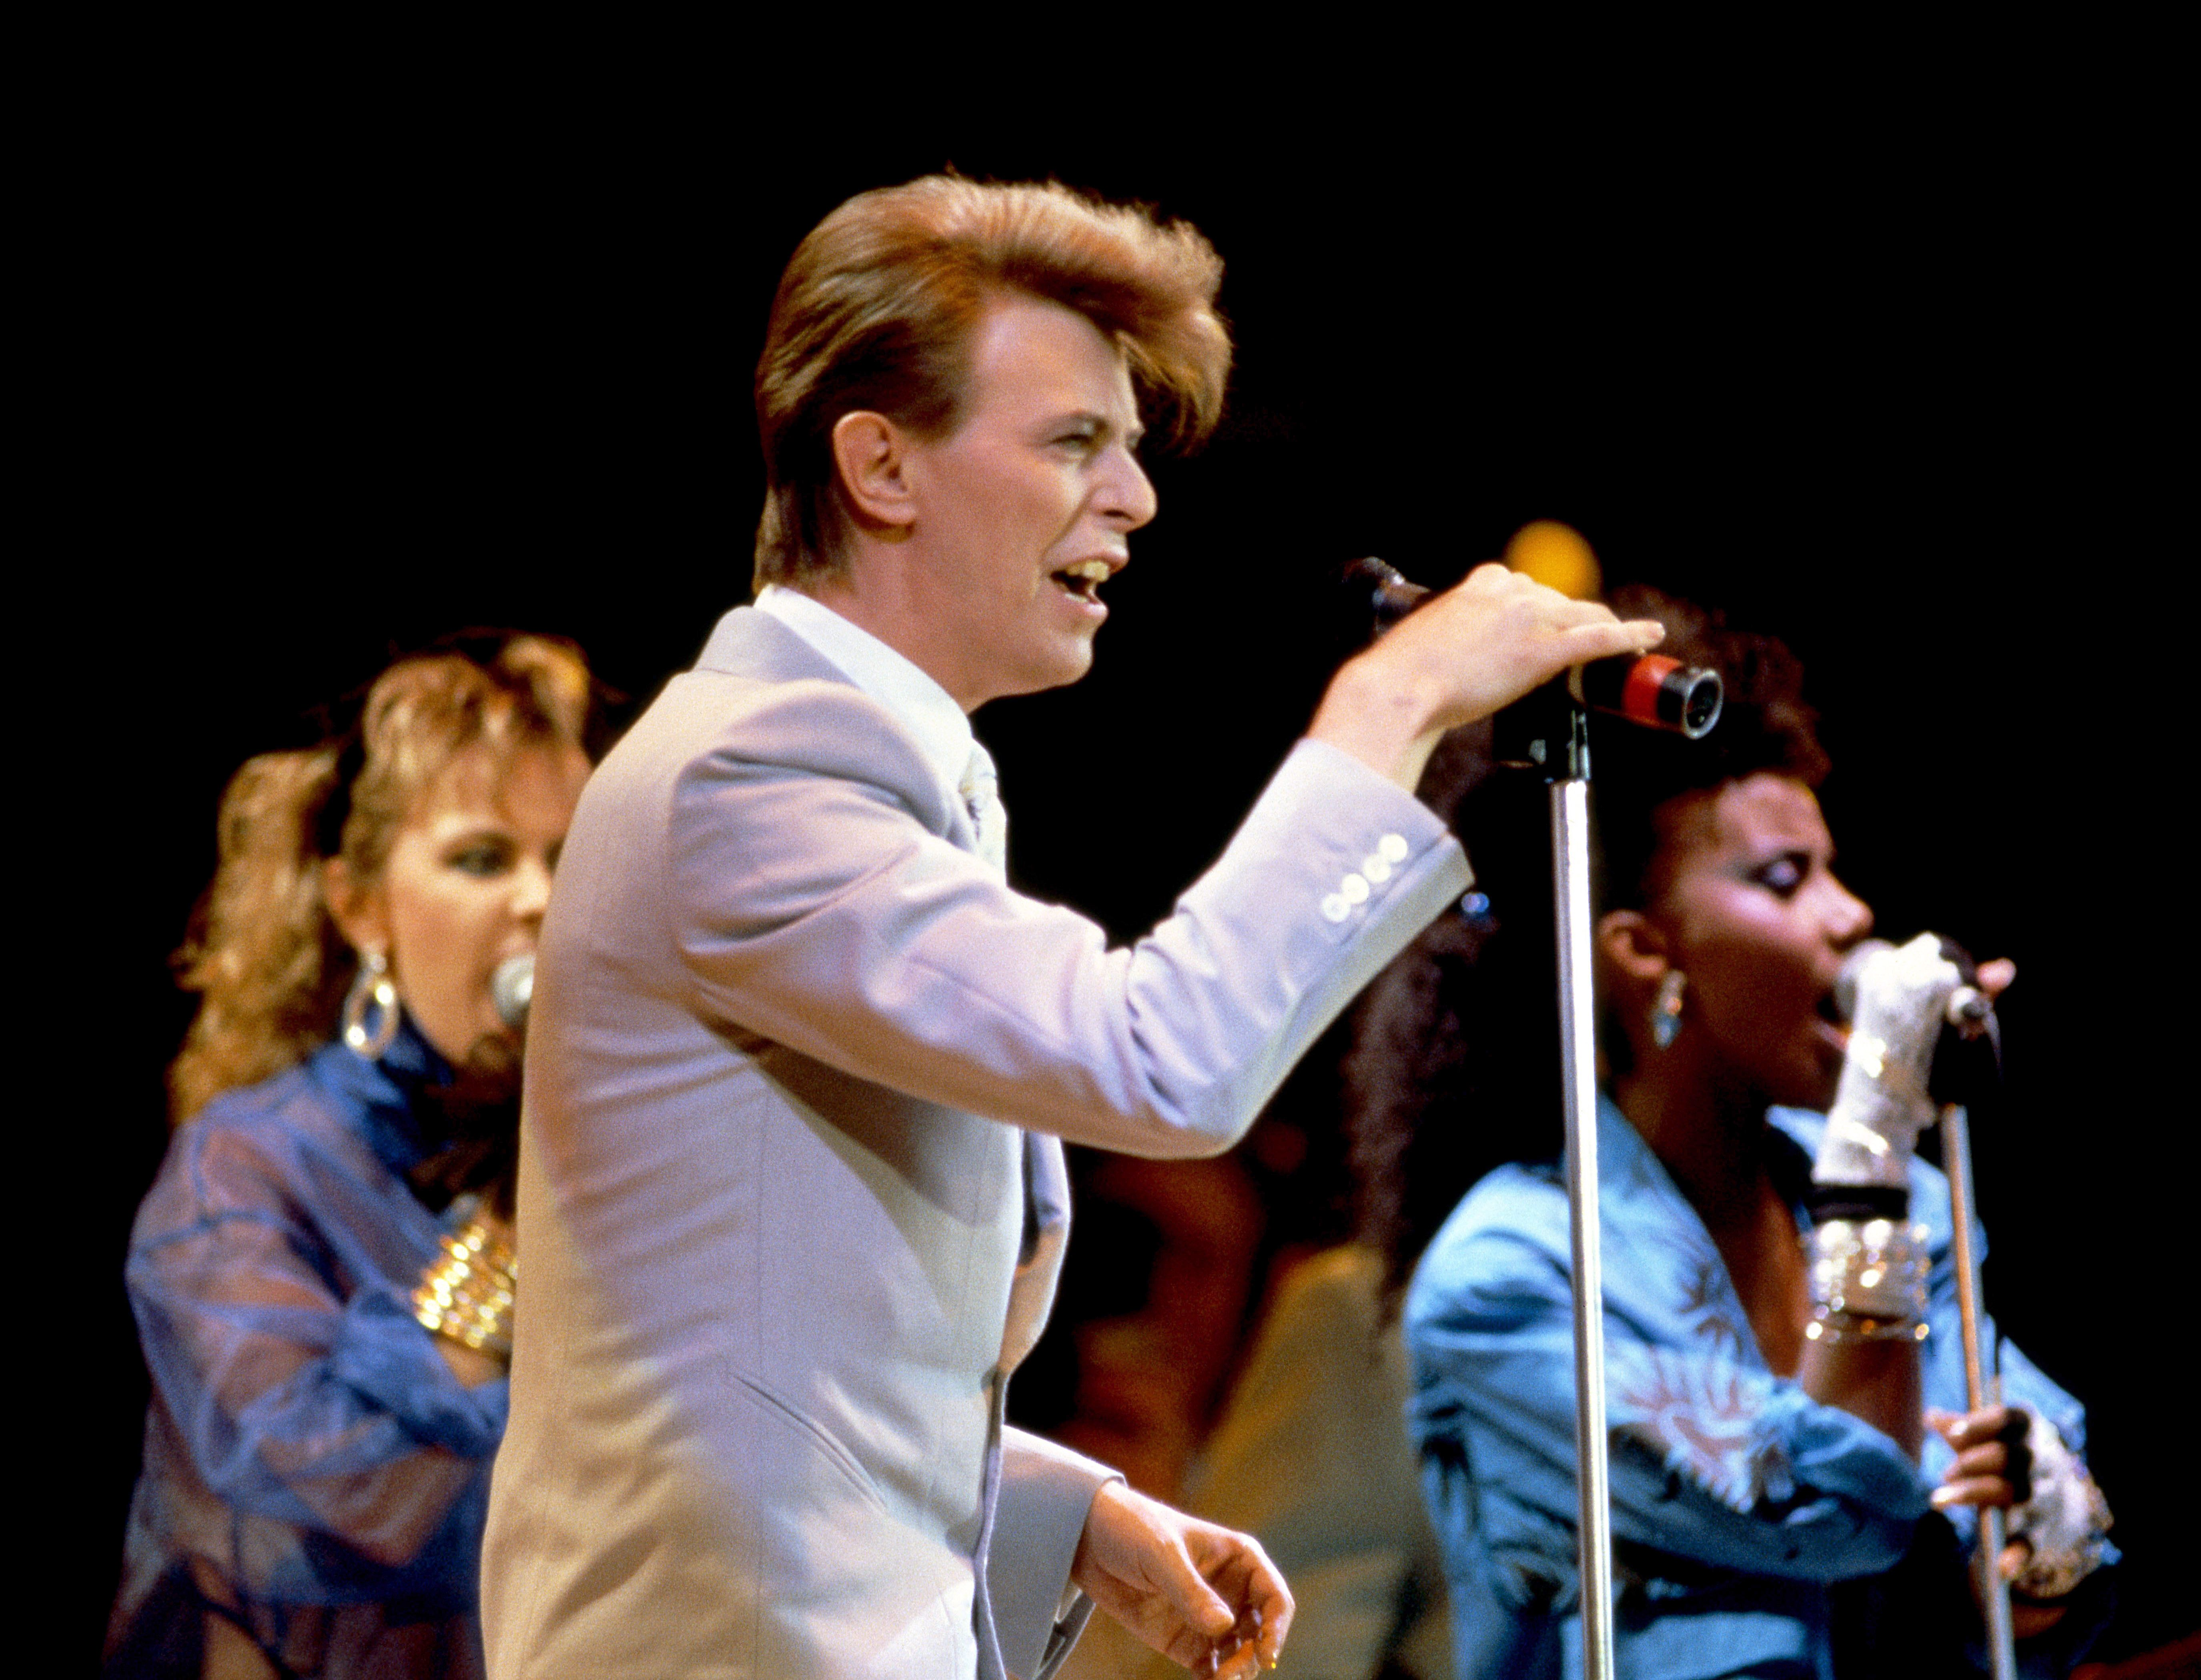 David Bowie with his two backing singers performing at Live Aid. The backing singer on the left is Tessa Niles.